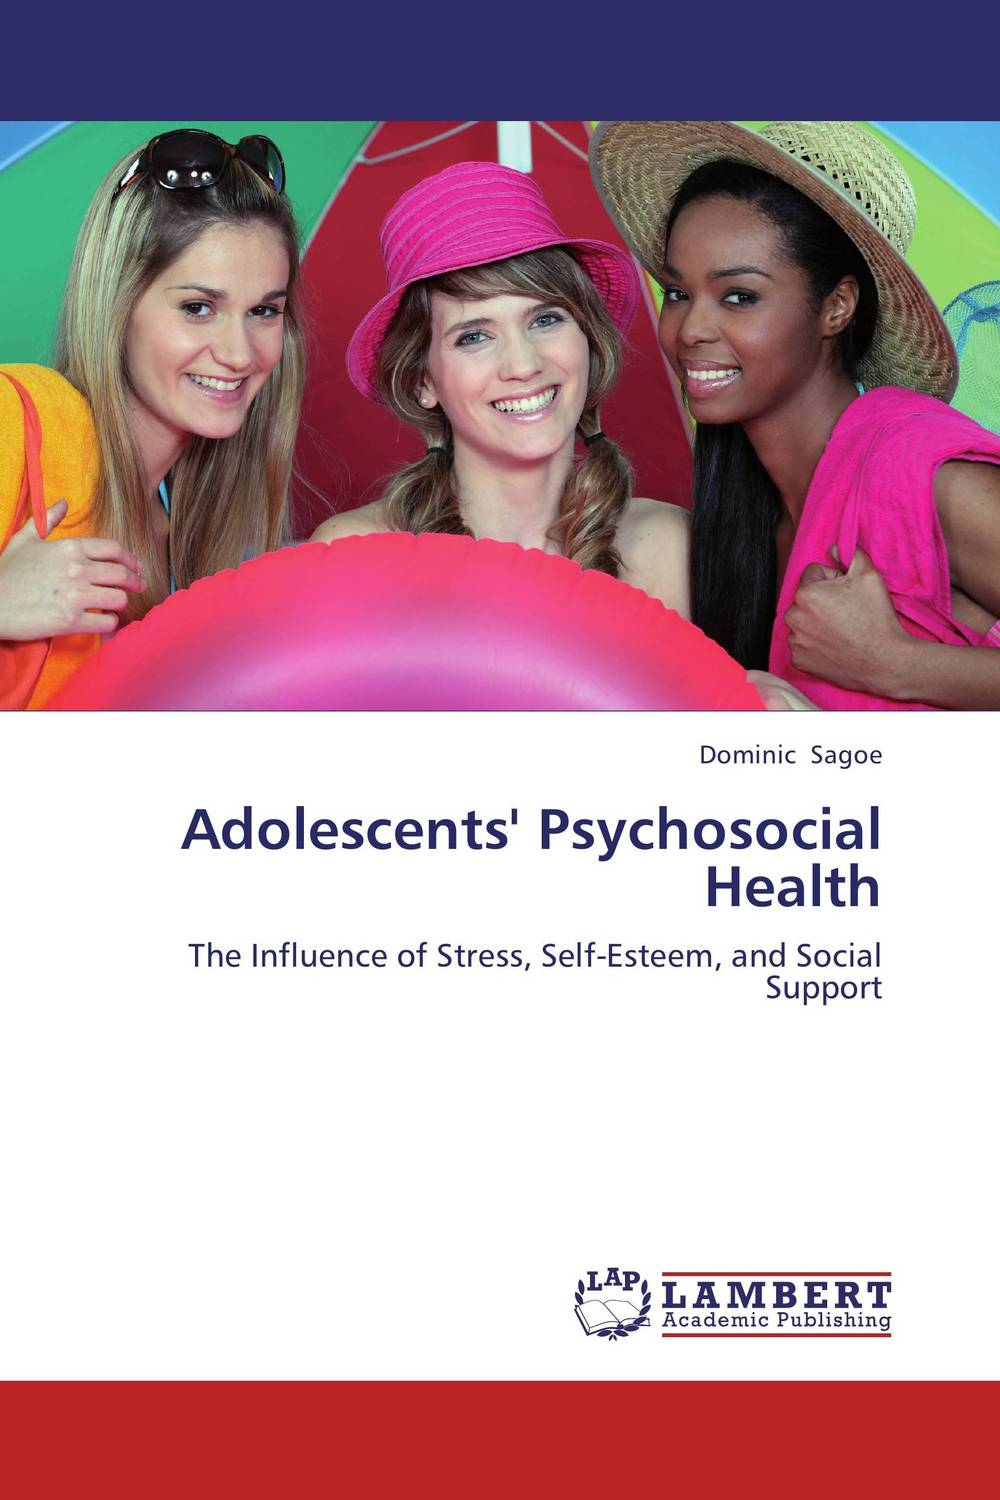 Adolescents' Psychosocial Health postpartum psychosocial support